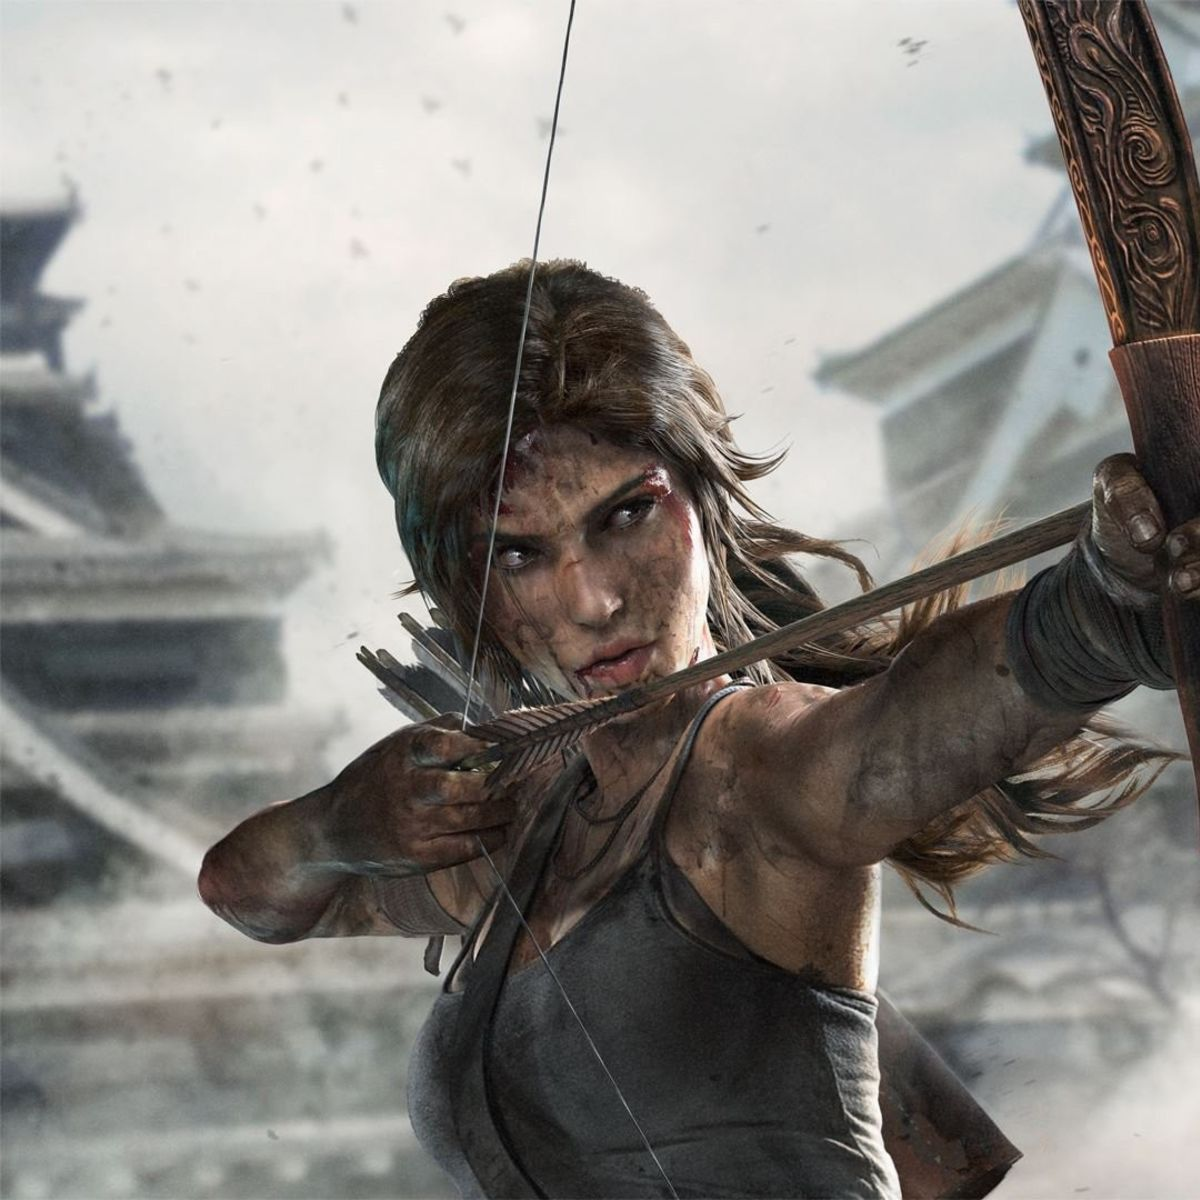 Wallpaper Lara Croft Shadow Of The Tomb Raider Concept: Video Game Heroine Of The Month: Lara Croft, Shadow Of The